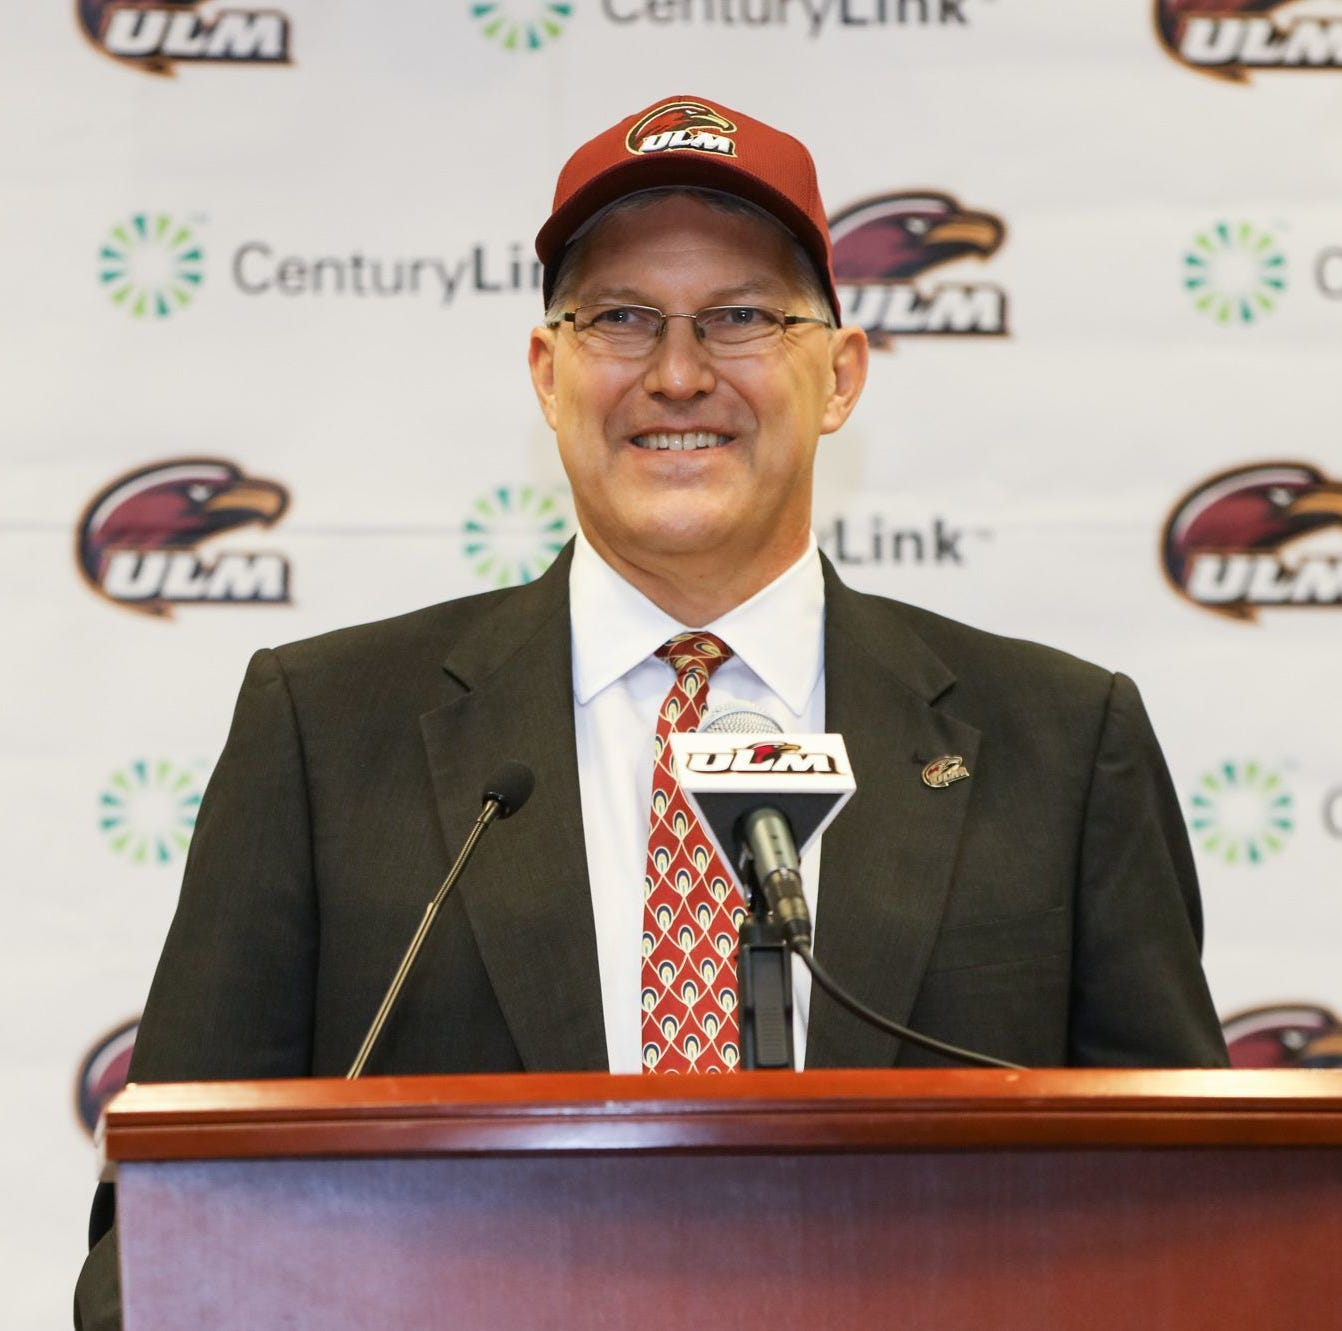 ULM athletic director Floyd resigns, cites health issue